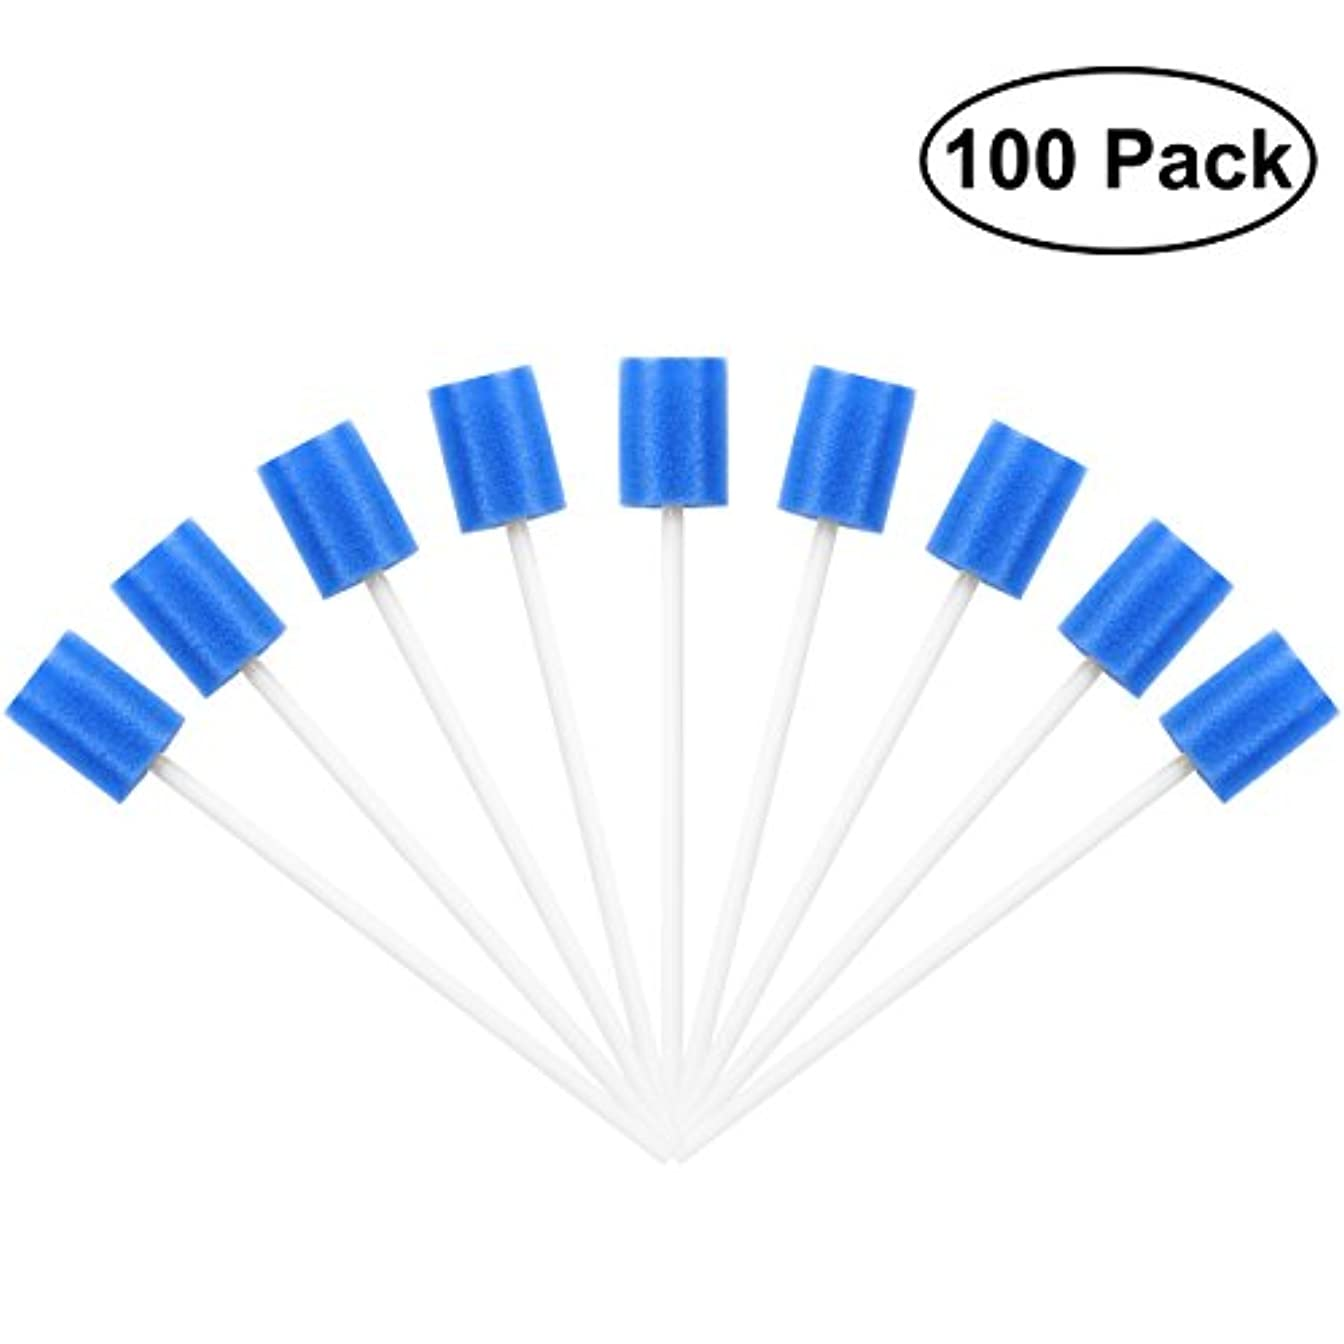 競合他社選手ピルファー亡命ROSENICE Mouth Sponges Dental Swabs 100Pcs Disposable Oral Care Swabs (Blue)